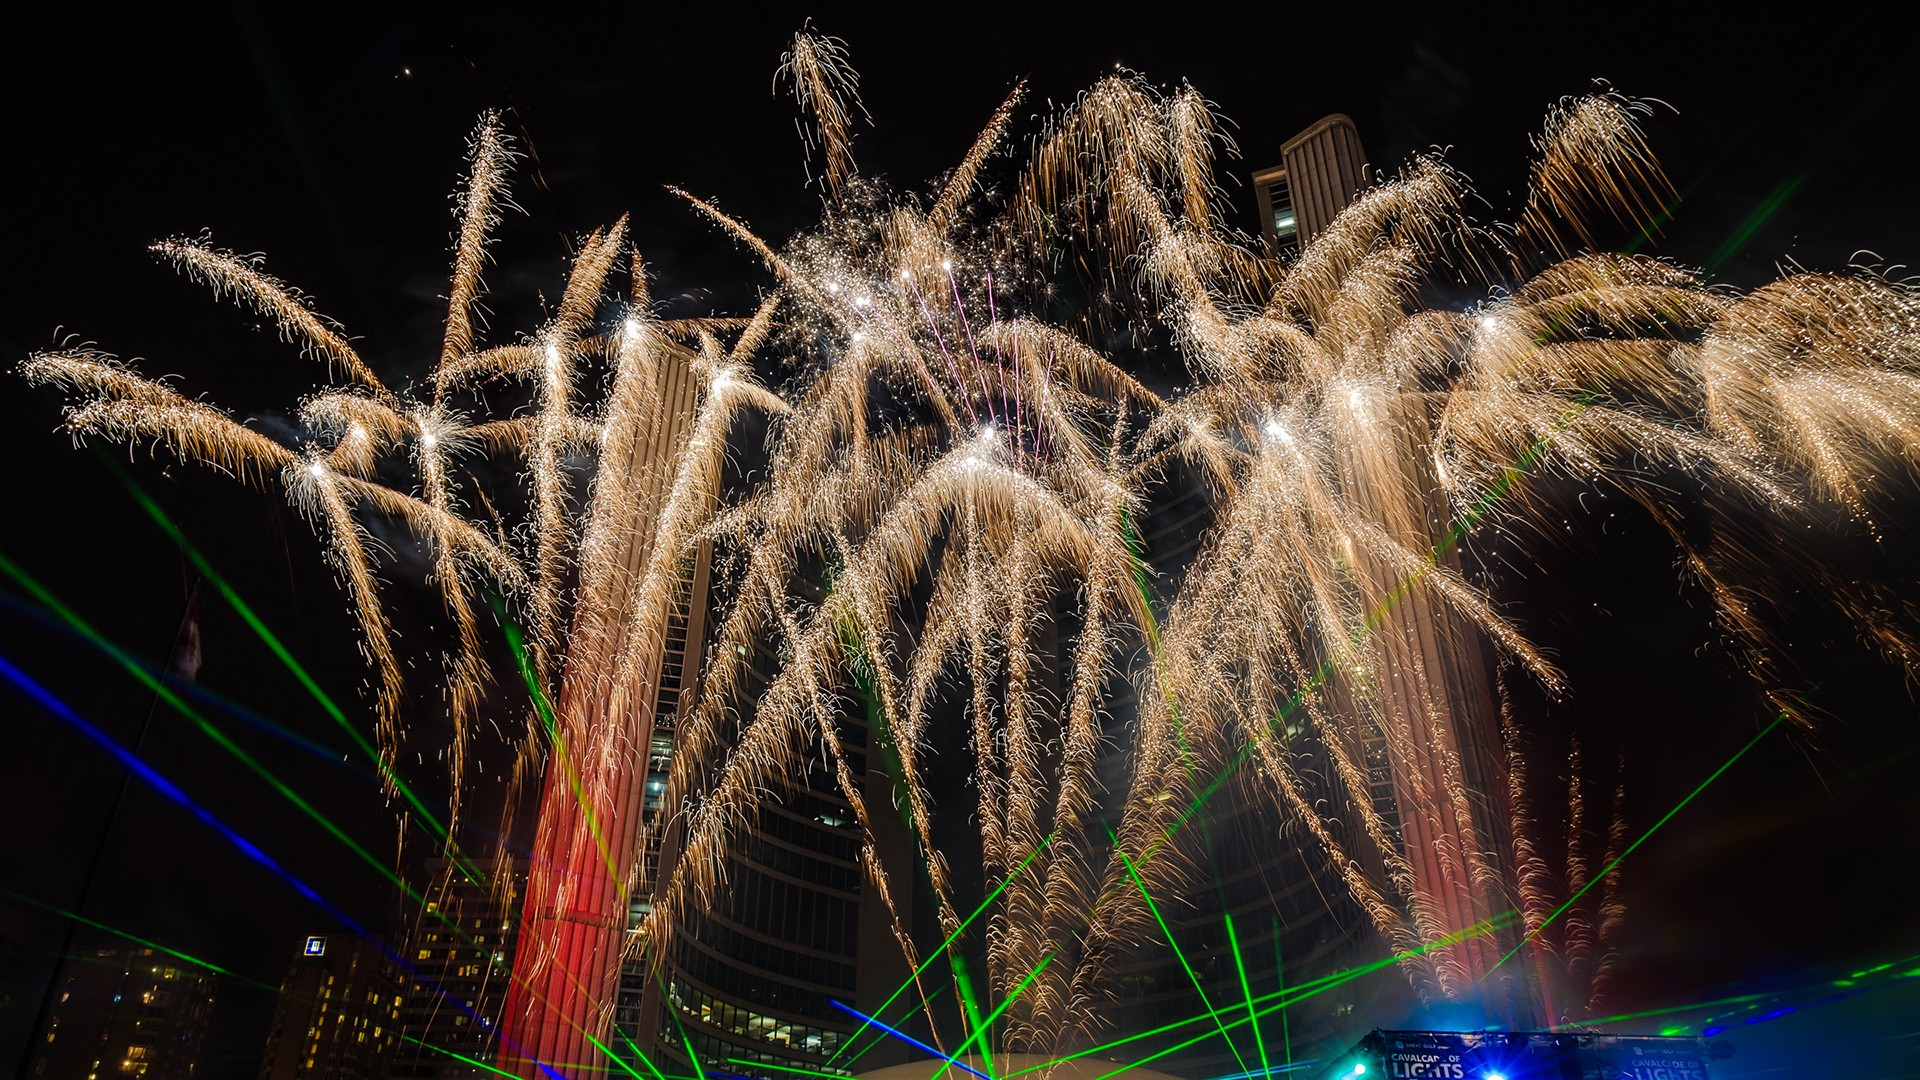 Seven tips to photograph fireworks and architecture   Photofocus